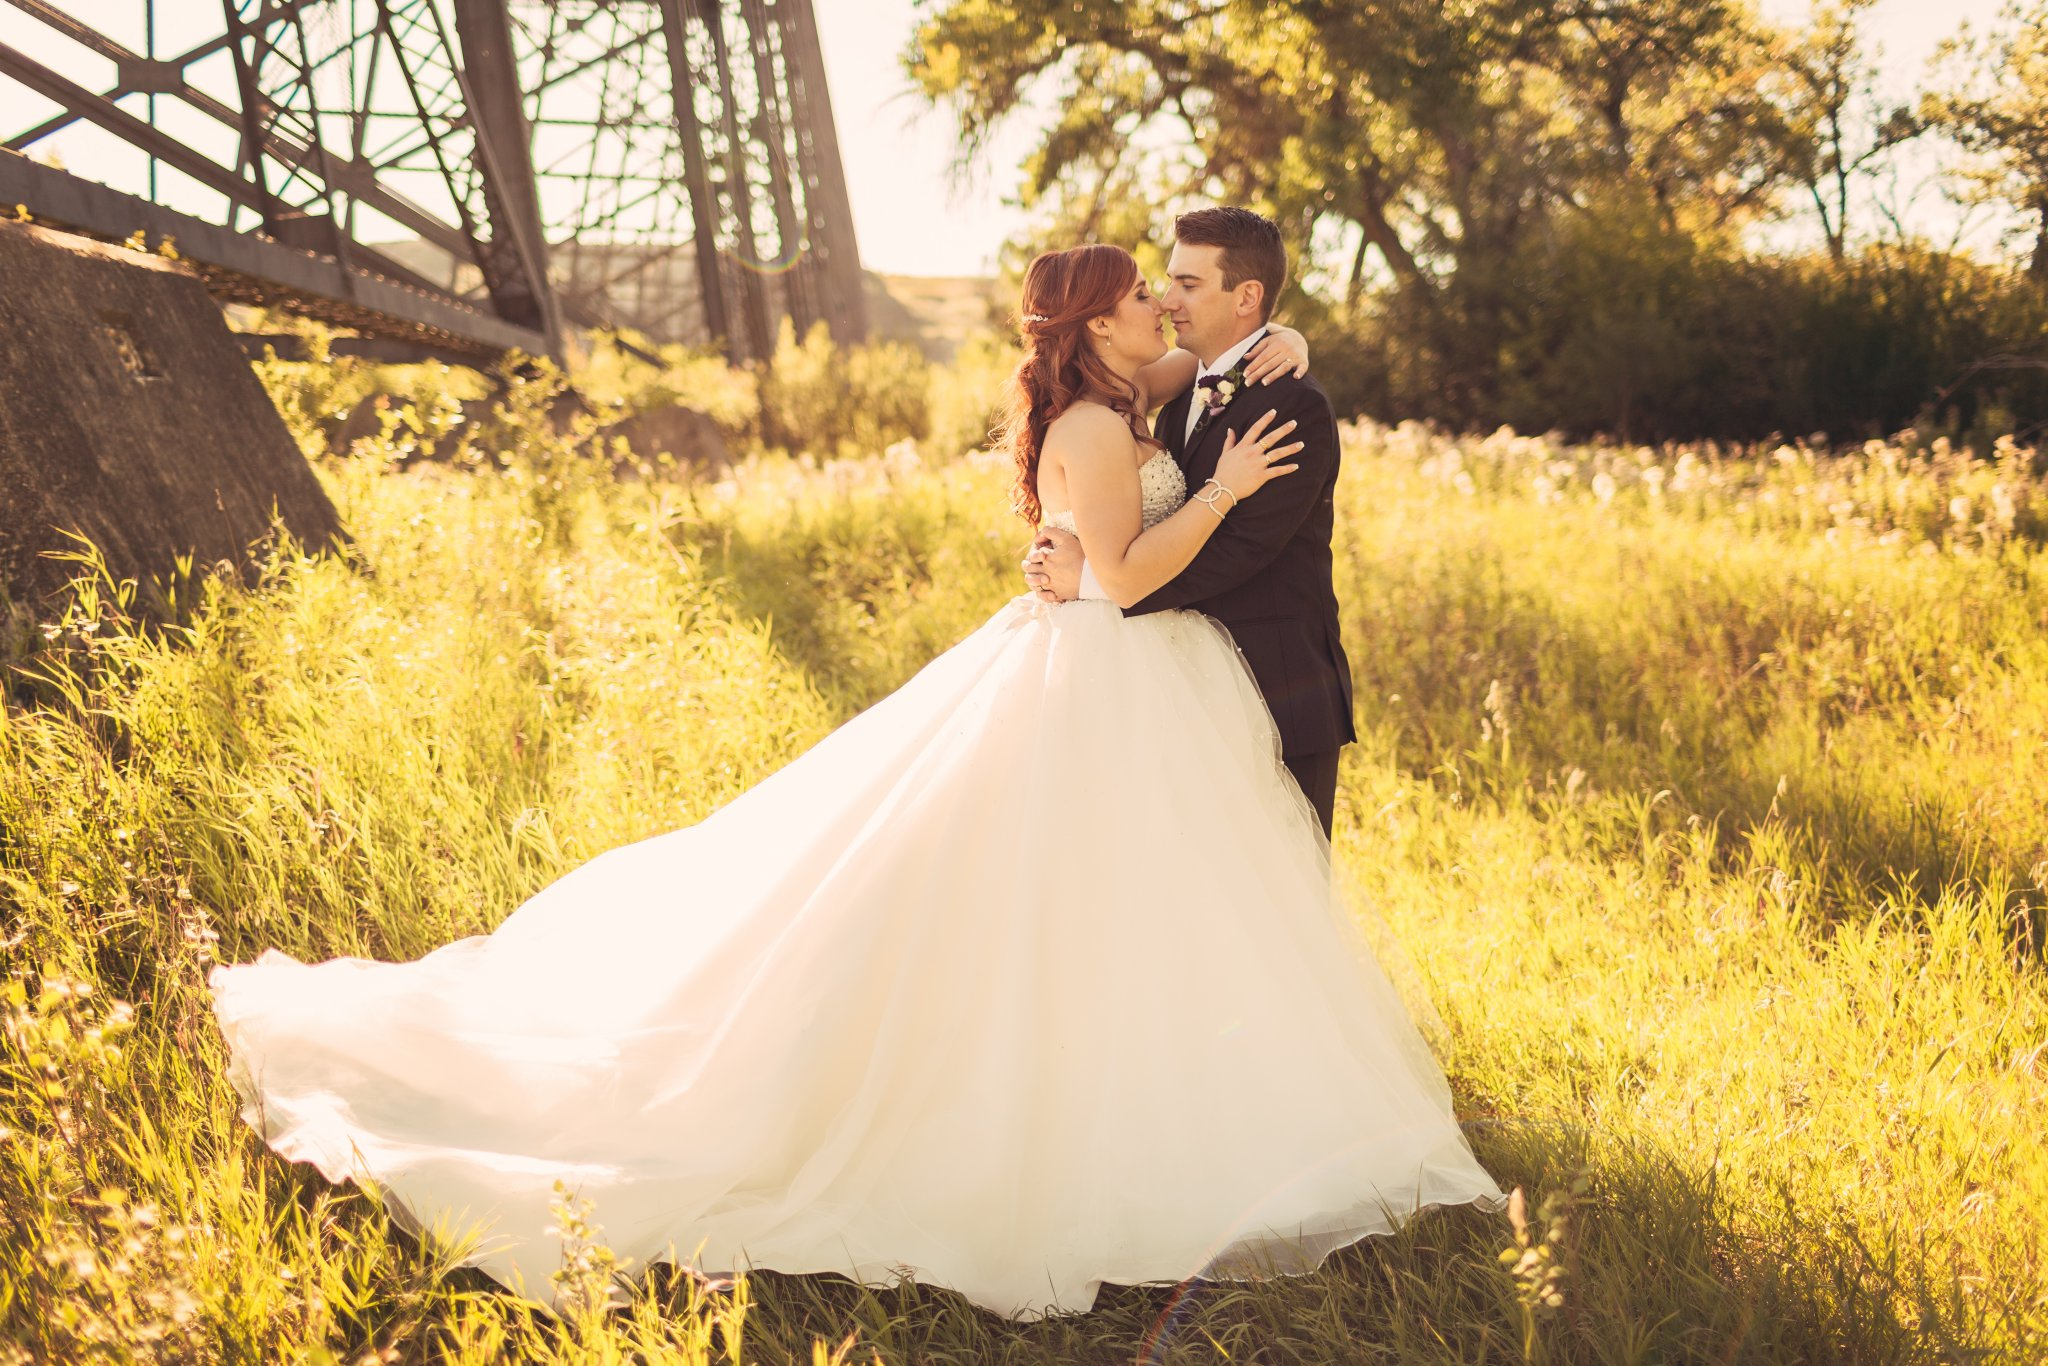 Caitlyn & John | Elegant Exposures Photography